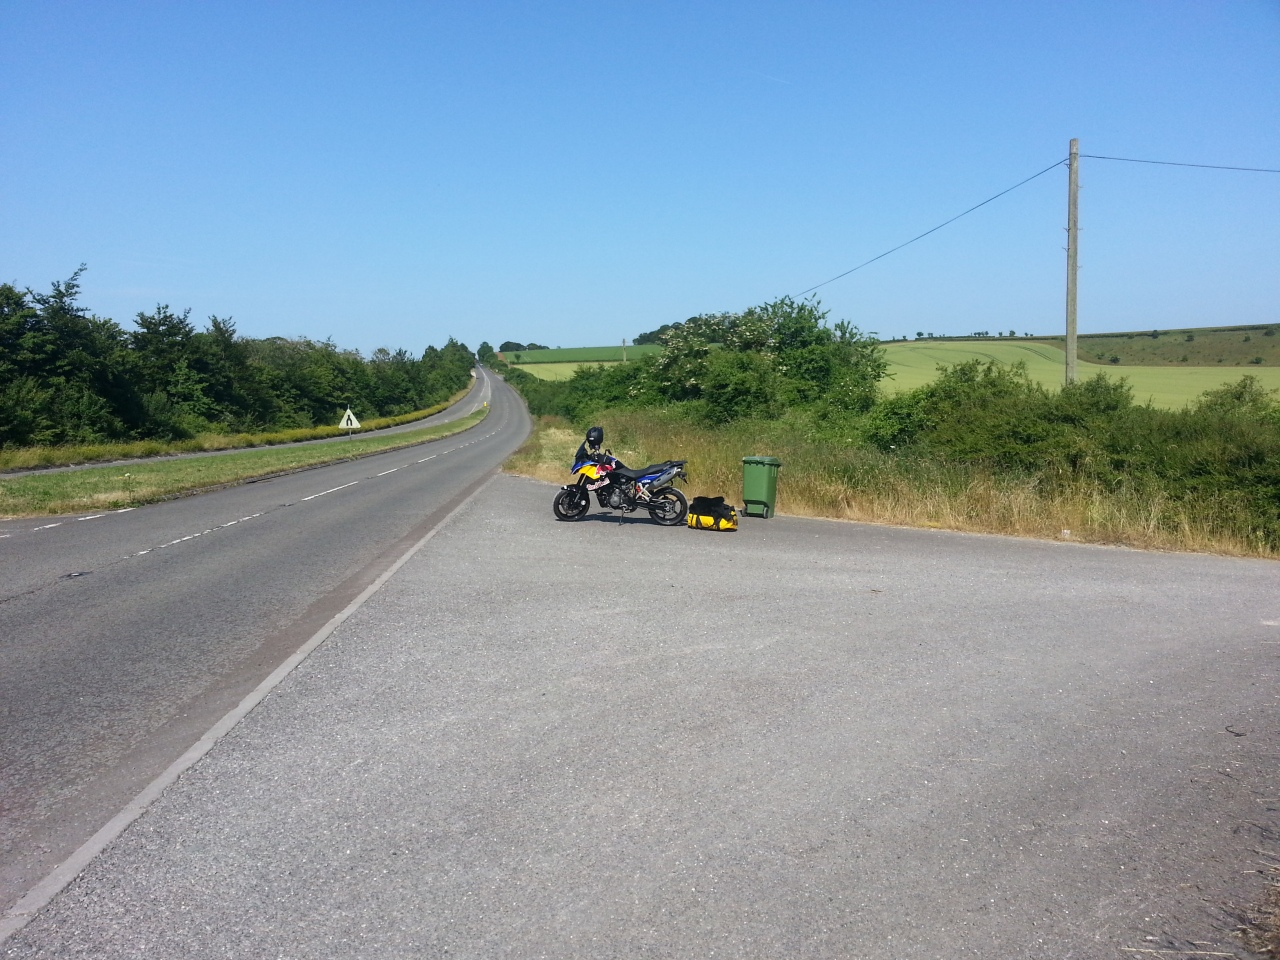 Ta ma de. My bike outside Midwinter's Farm on A30... fortunately the farmer was a top guy. Thank you.